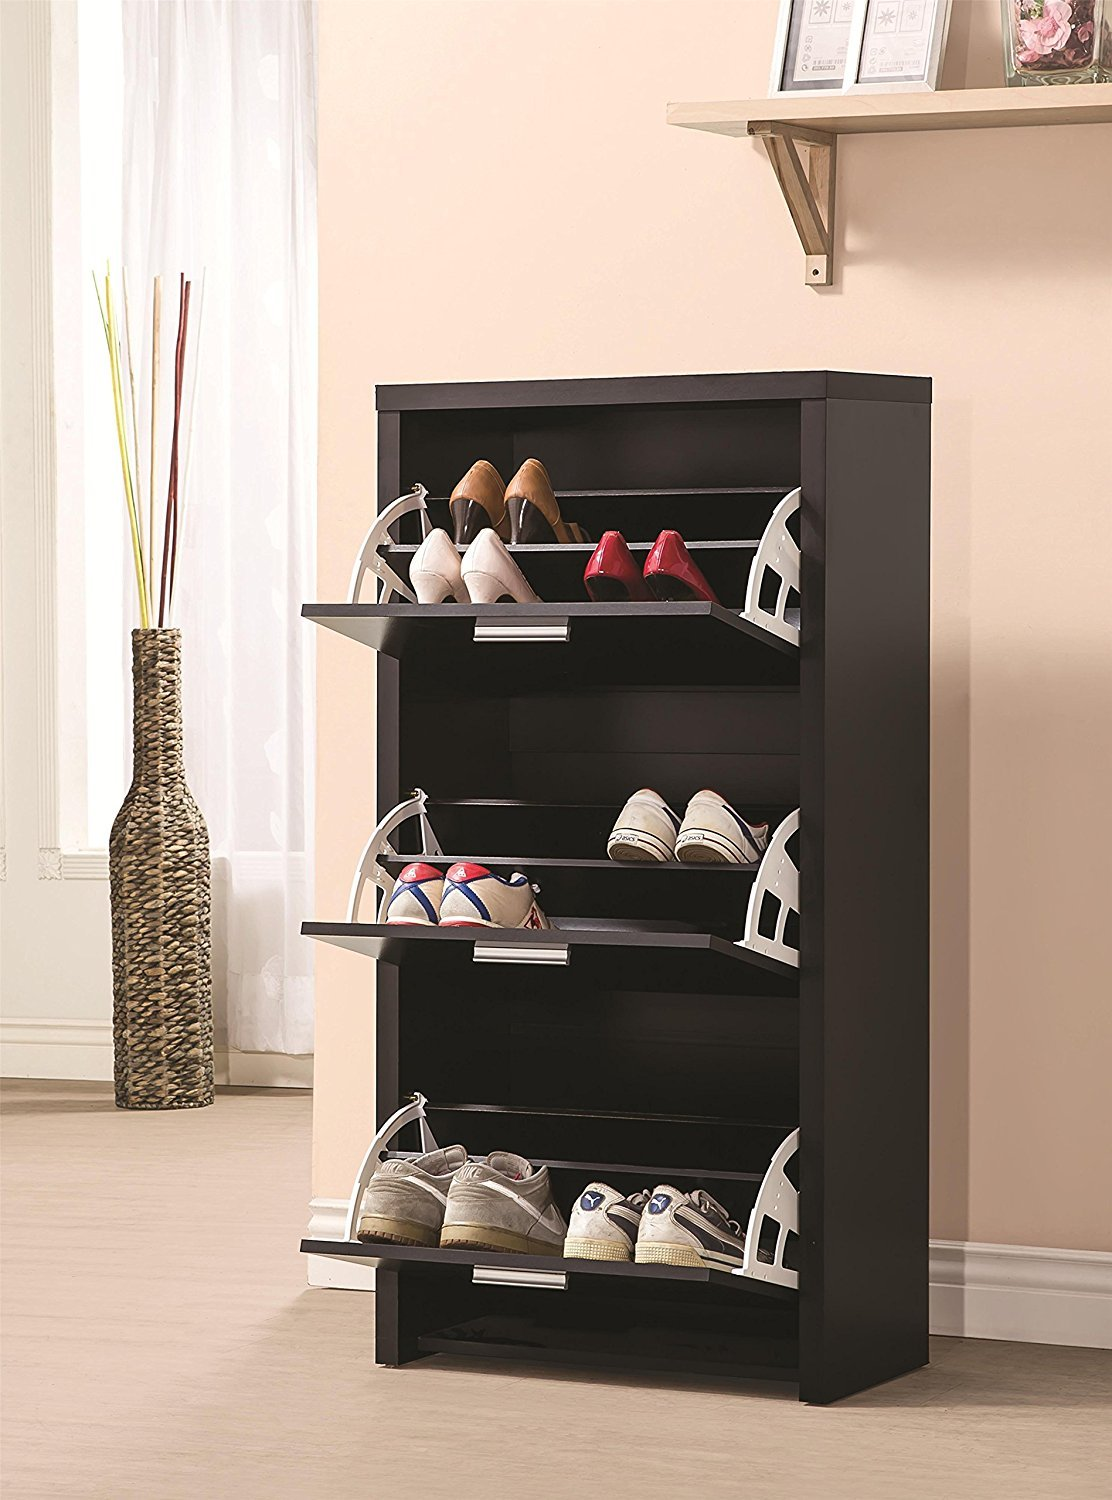 Sensational Tilt Out Or Pull Down Shoe Cabinet Pros And Cons Gamerscity Chair Design For Home Gamerscityorg